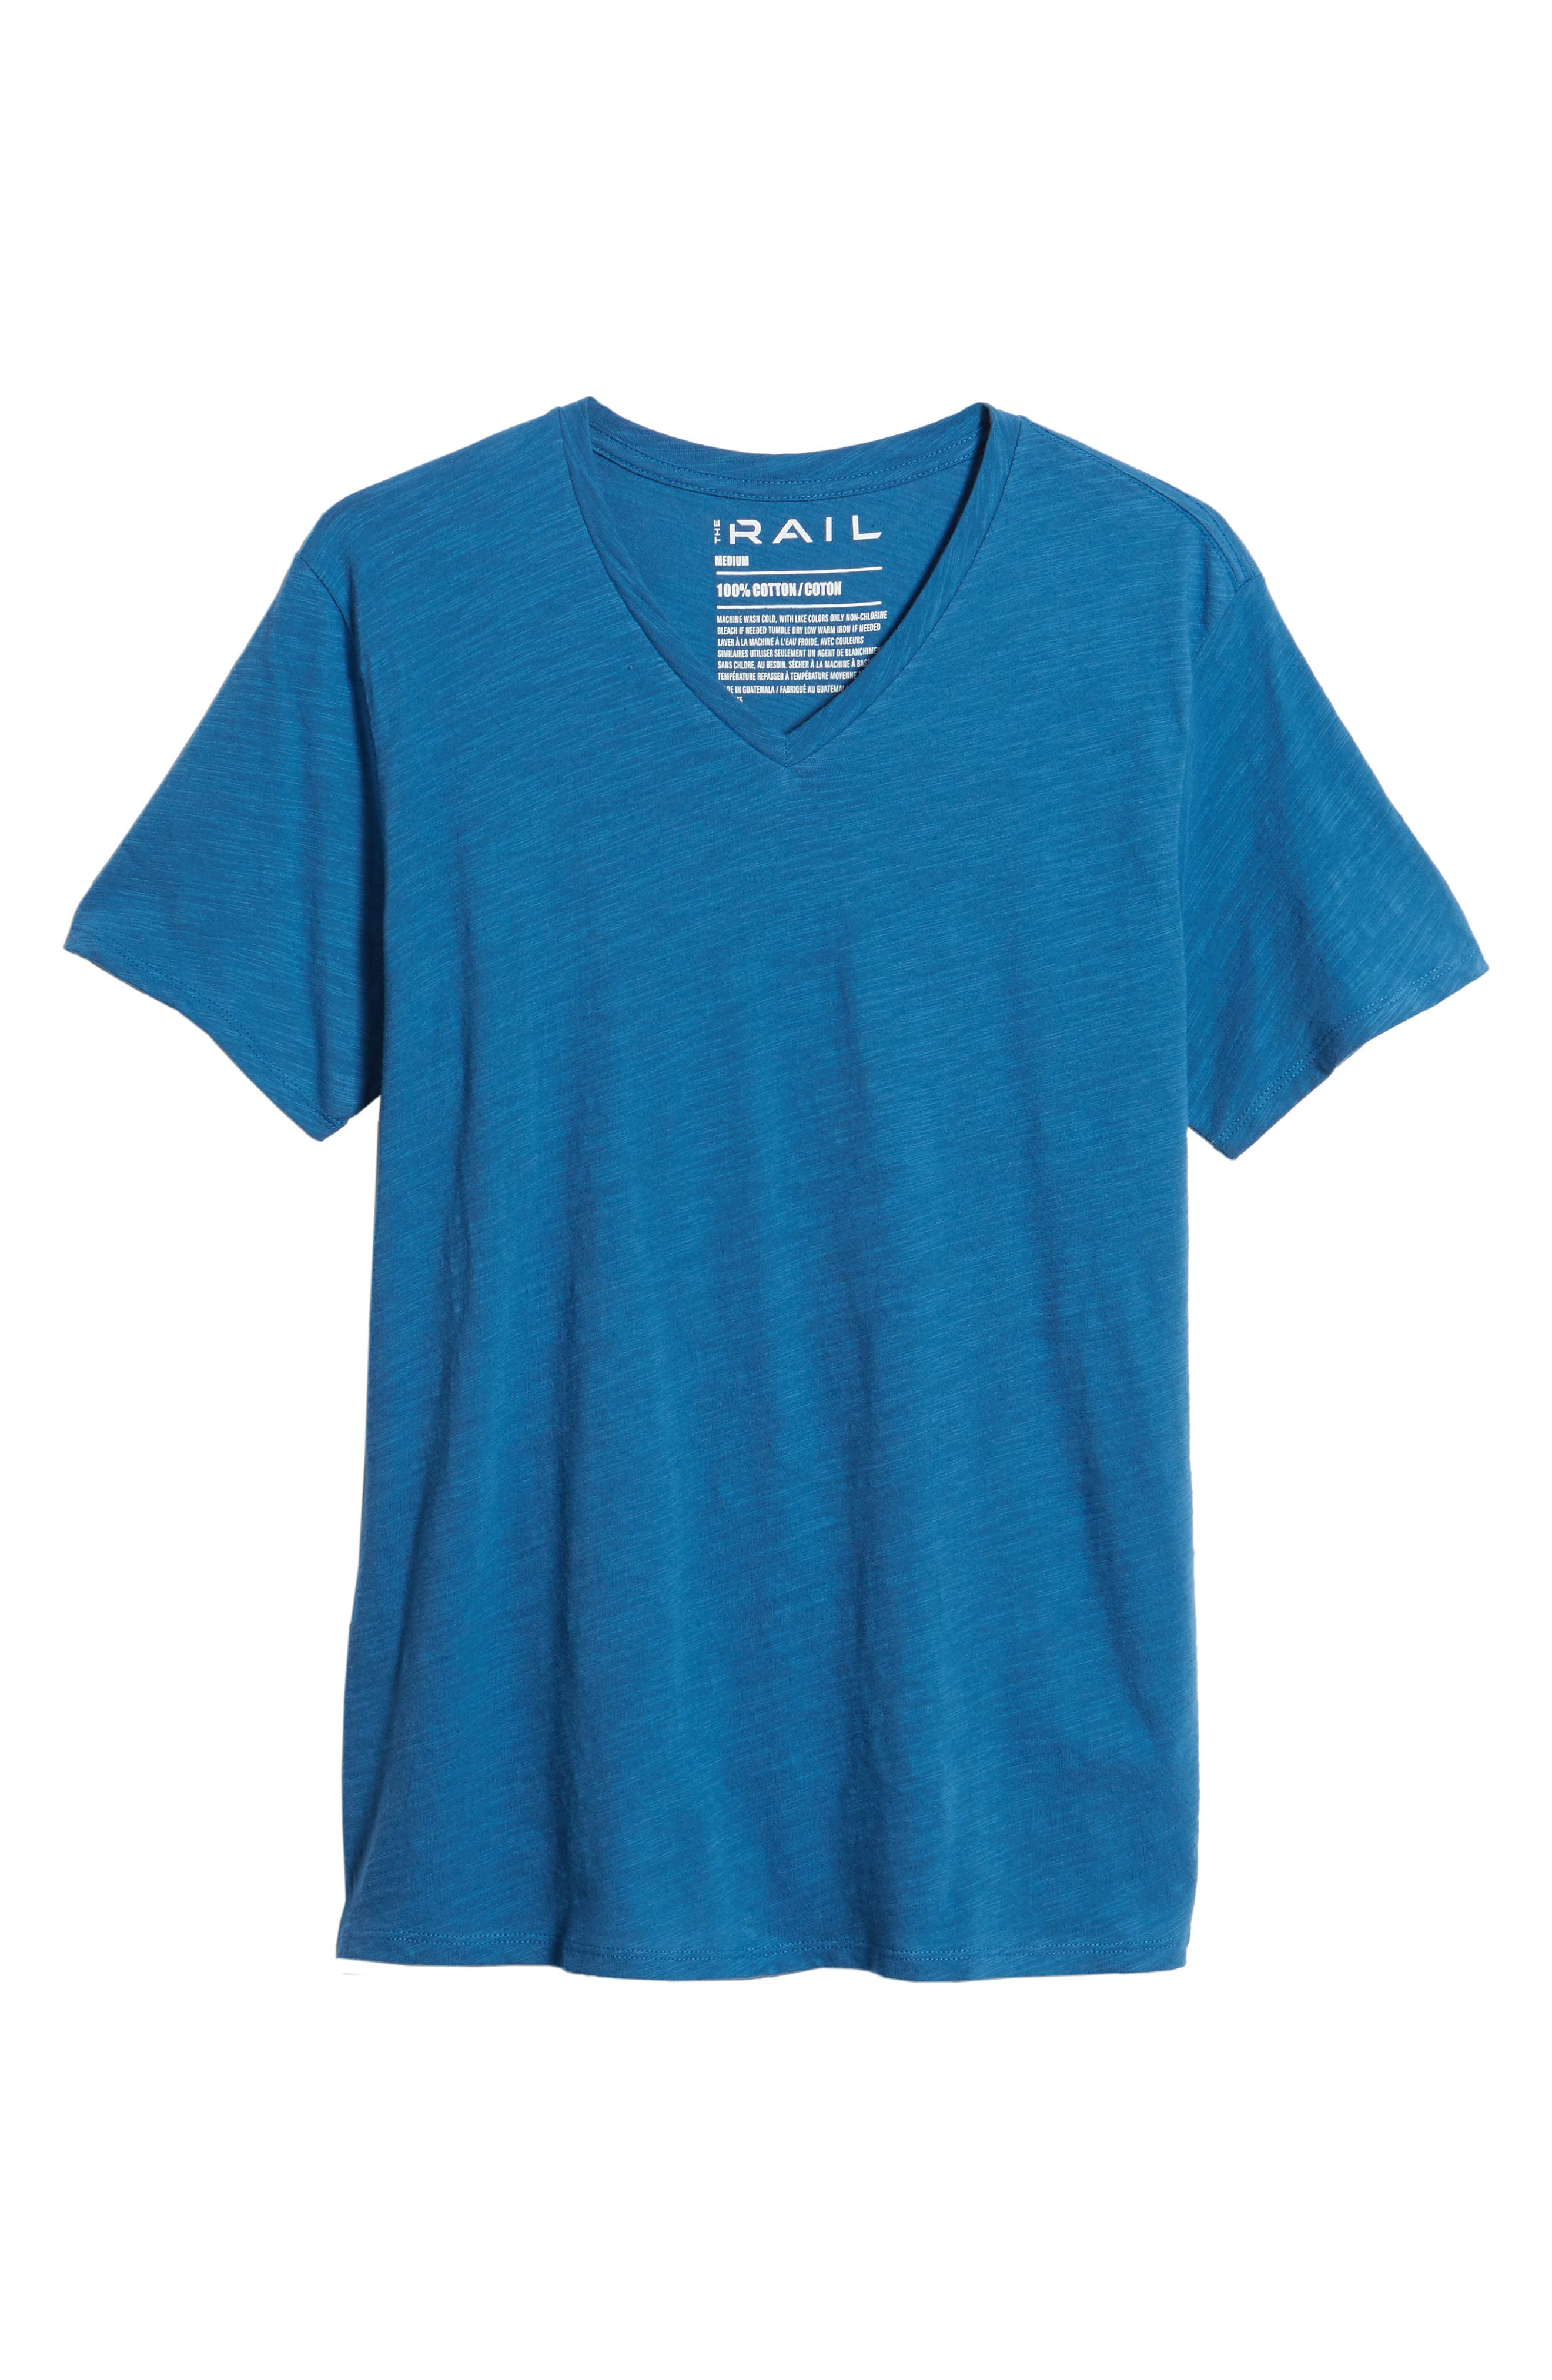 Main Image - The Rail Slub Cotton V-Neck T-Shirt (2 for $30)